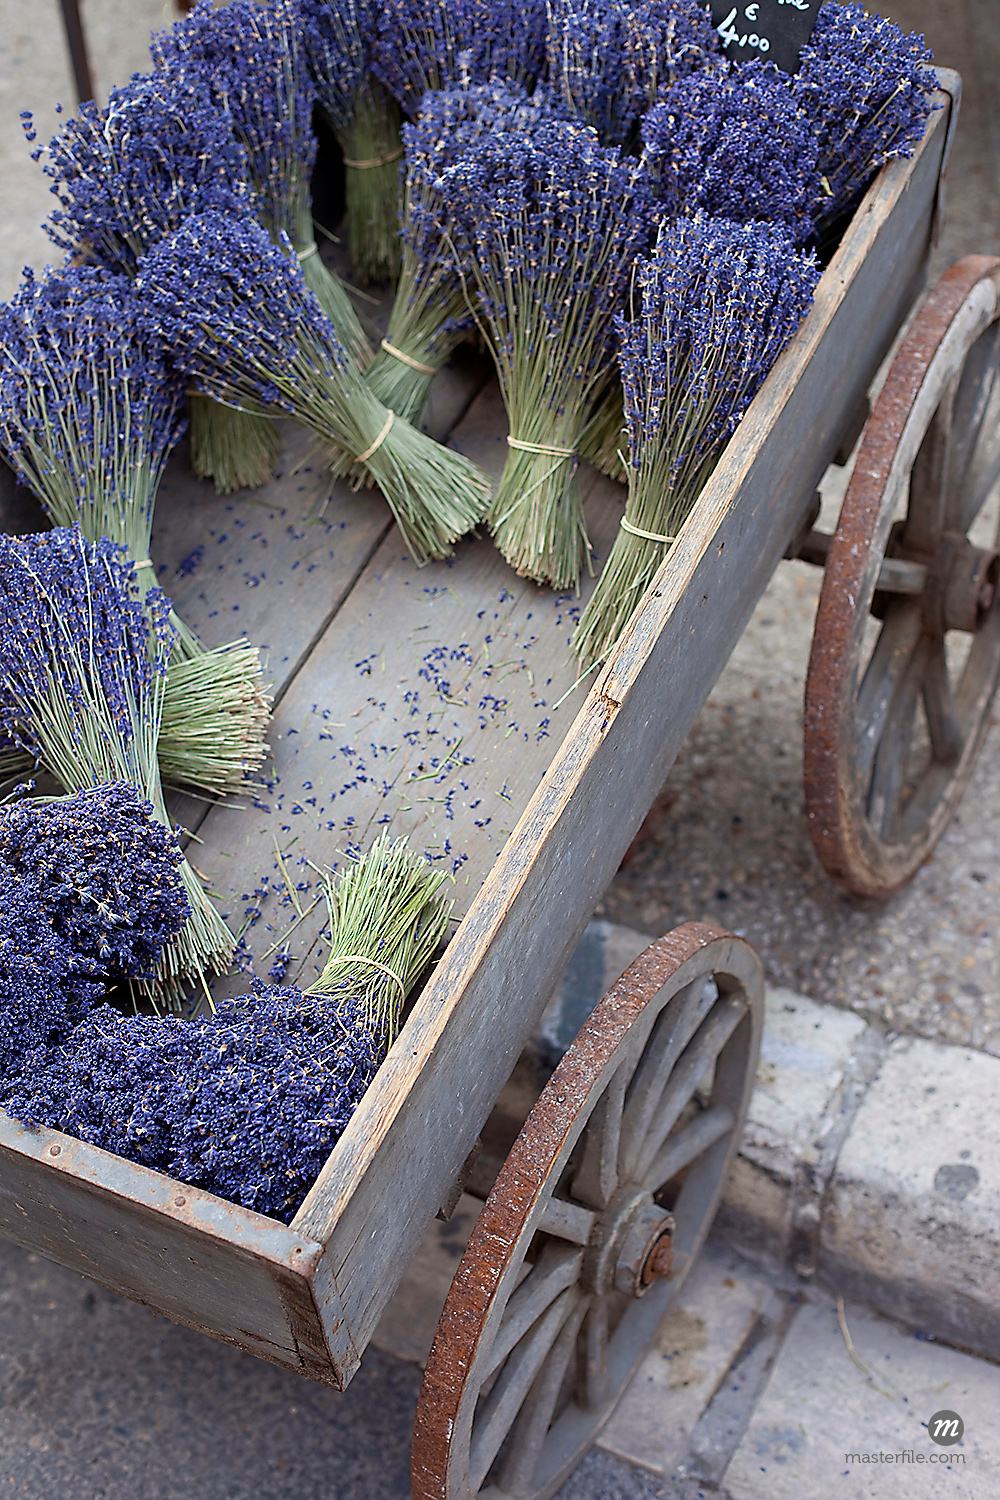 Overhead View of Bunches of Lavender, Provence, France © Susan Findlay / Masterfile